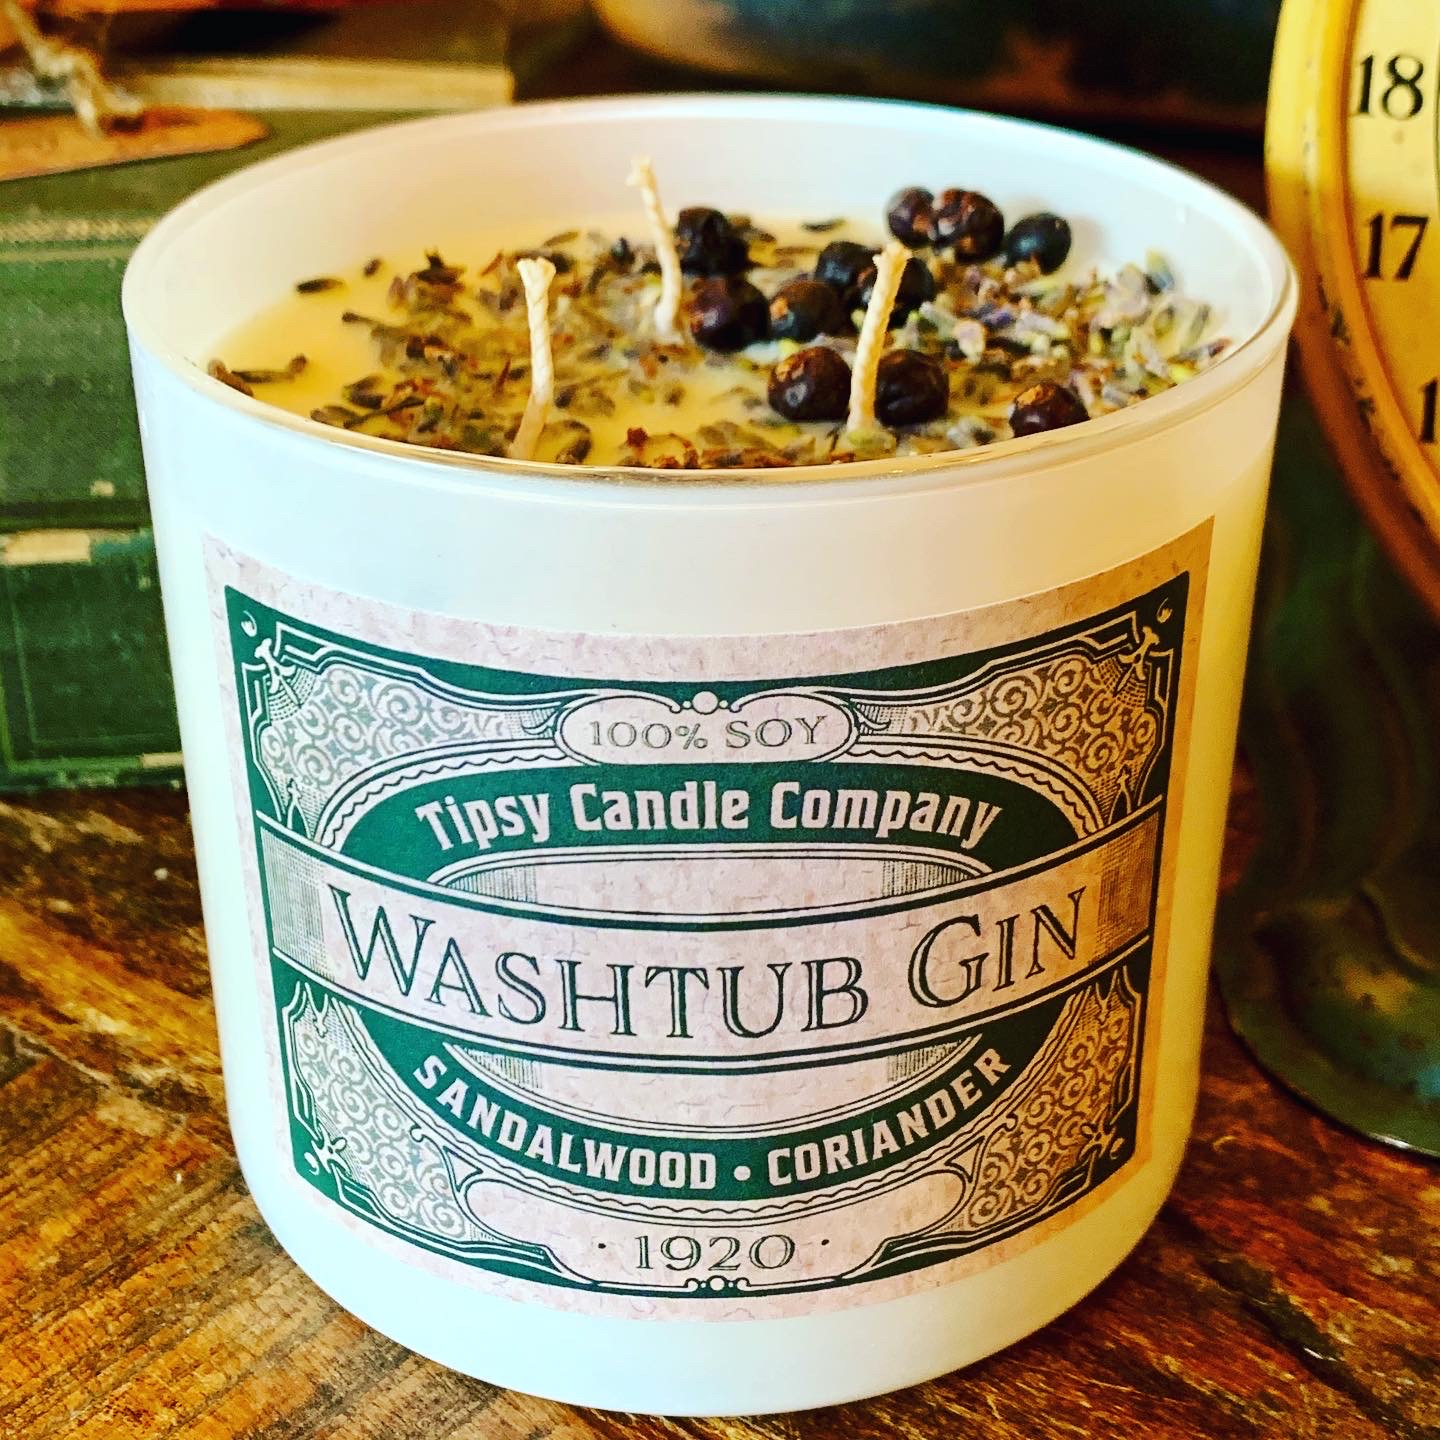 Washtub Gin 3 wick Soy 17 ounce Candle made by Tipsy Candle Company